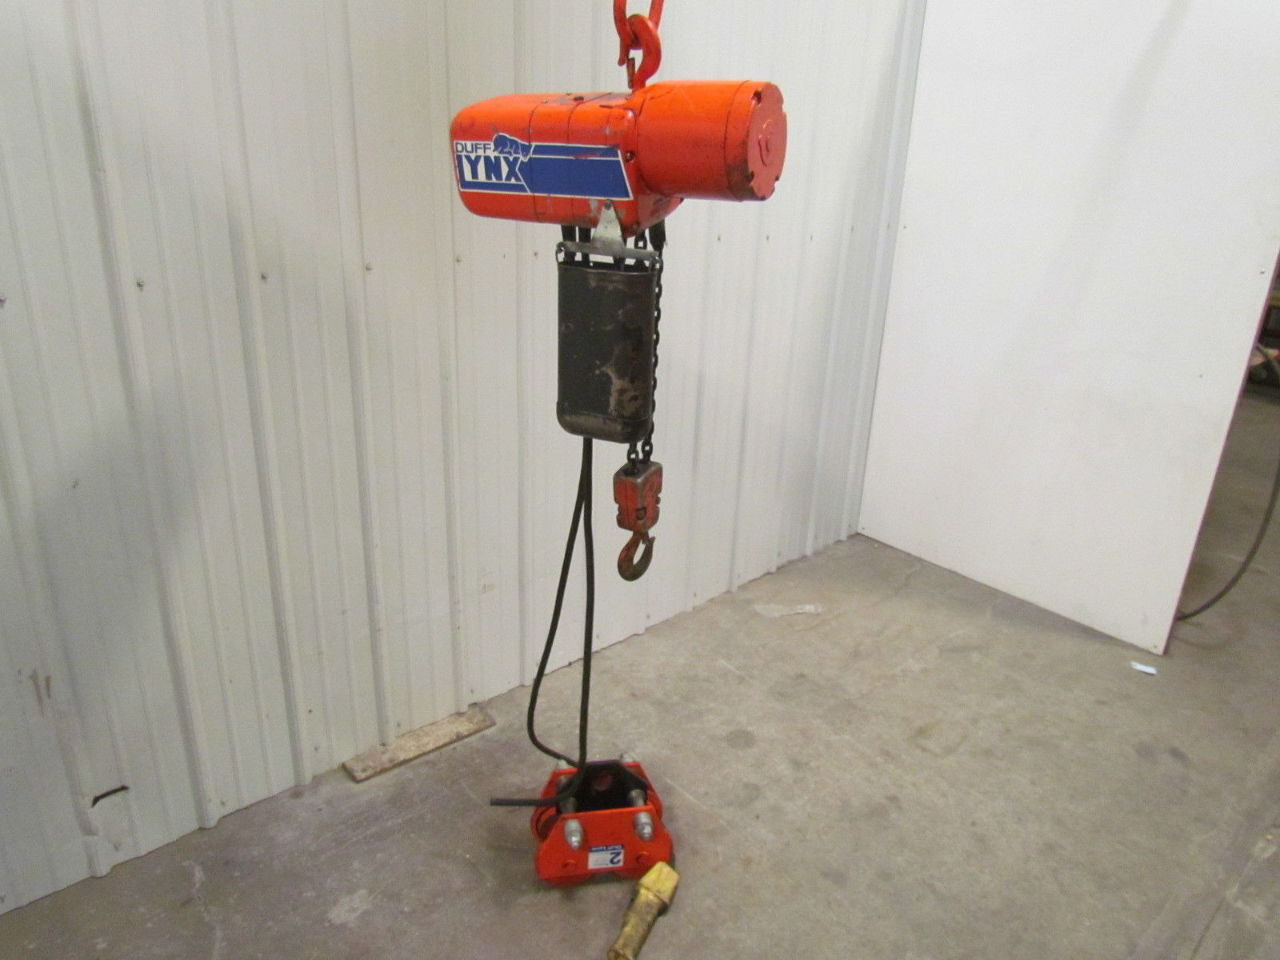 Duff lynx coffing elc4008 2 ton 3 ph electric chain hoist for 2 ton hoist with motorized trolley